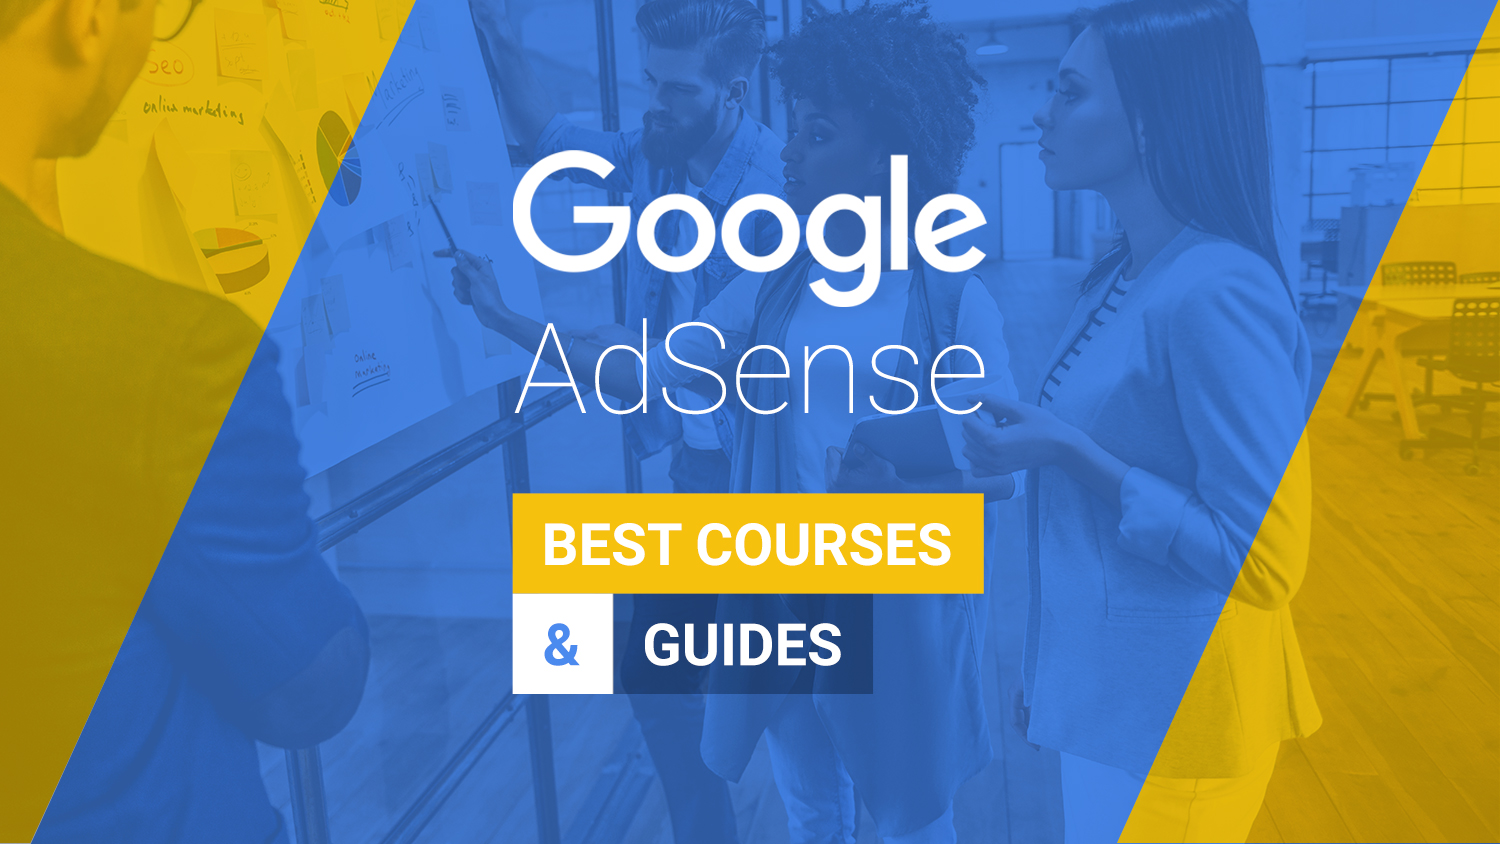 Best Google Adsense Courses And Guides In 2019 Free And Paid